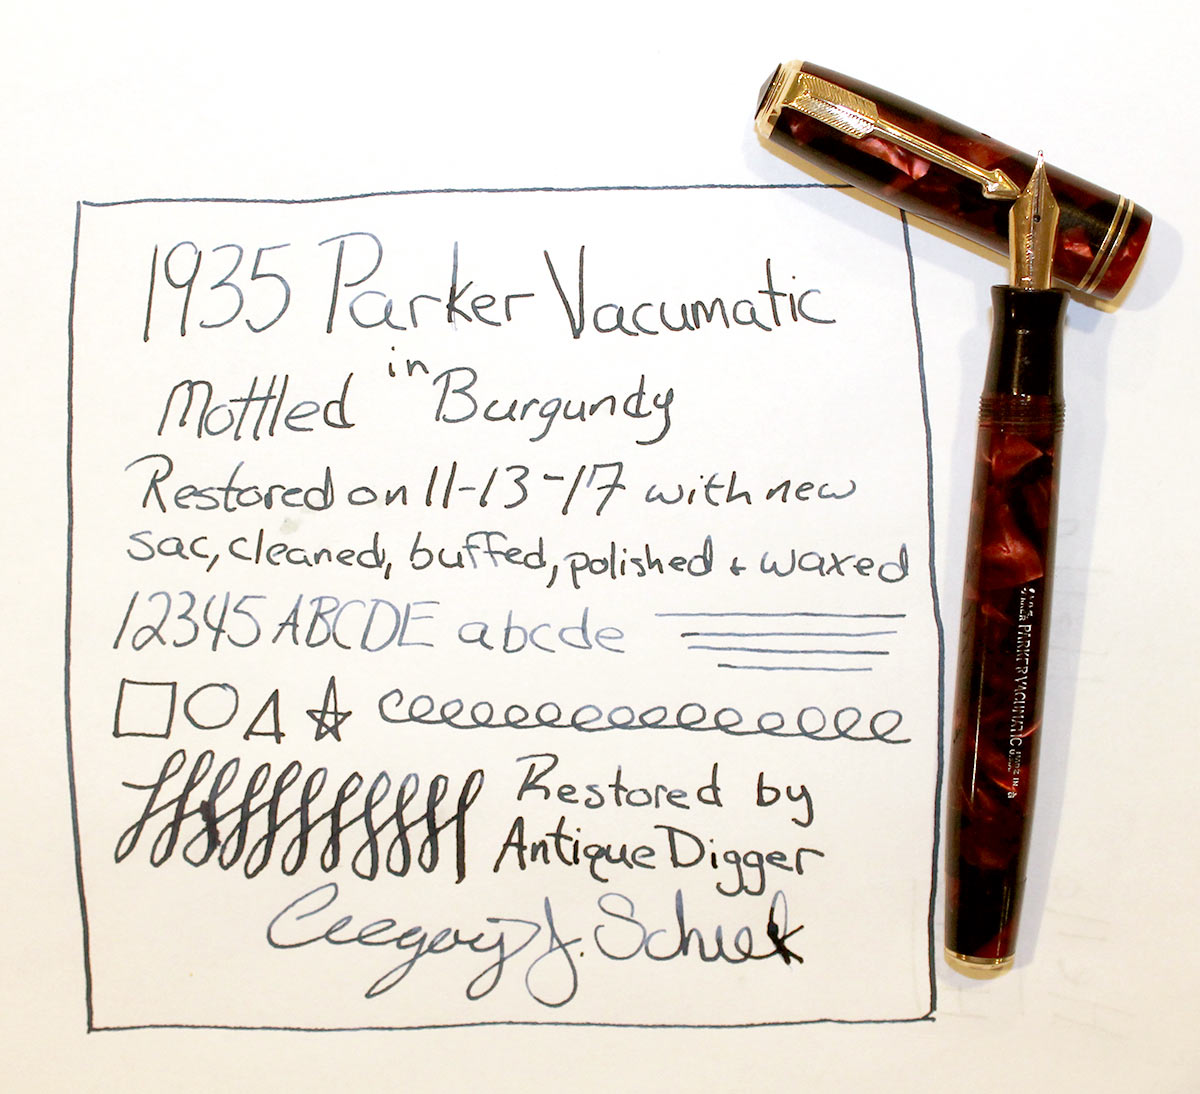 1935 PARKER BURGUNDY MOTTLED DOUBLE JEWEL VACUMATIC JR FOUNTAIN PEN RESTORED